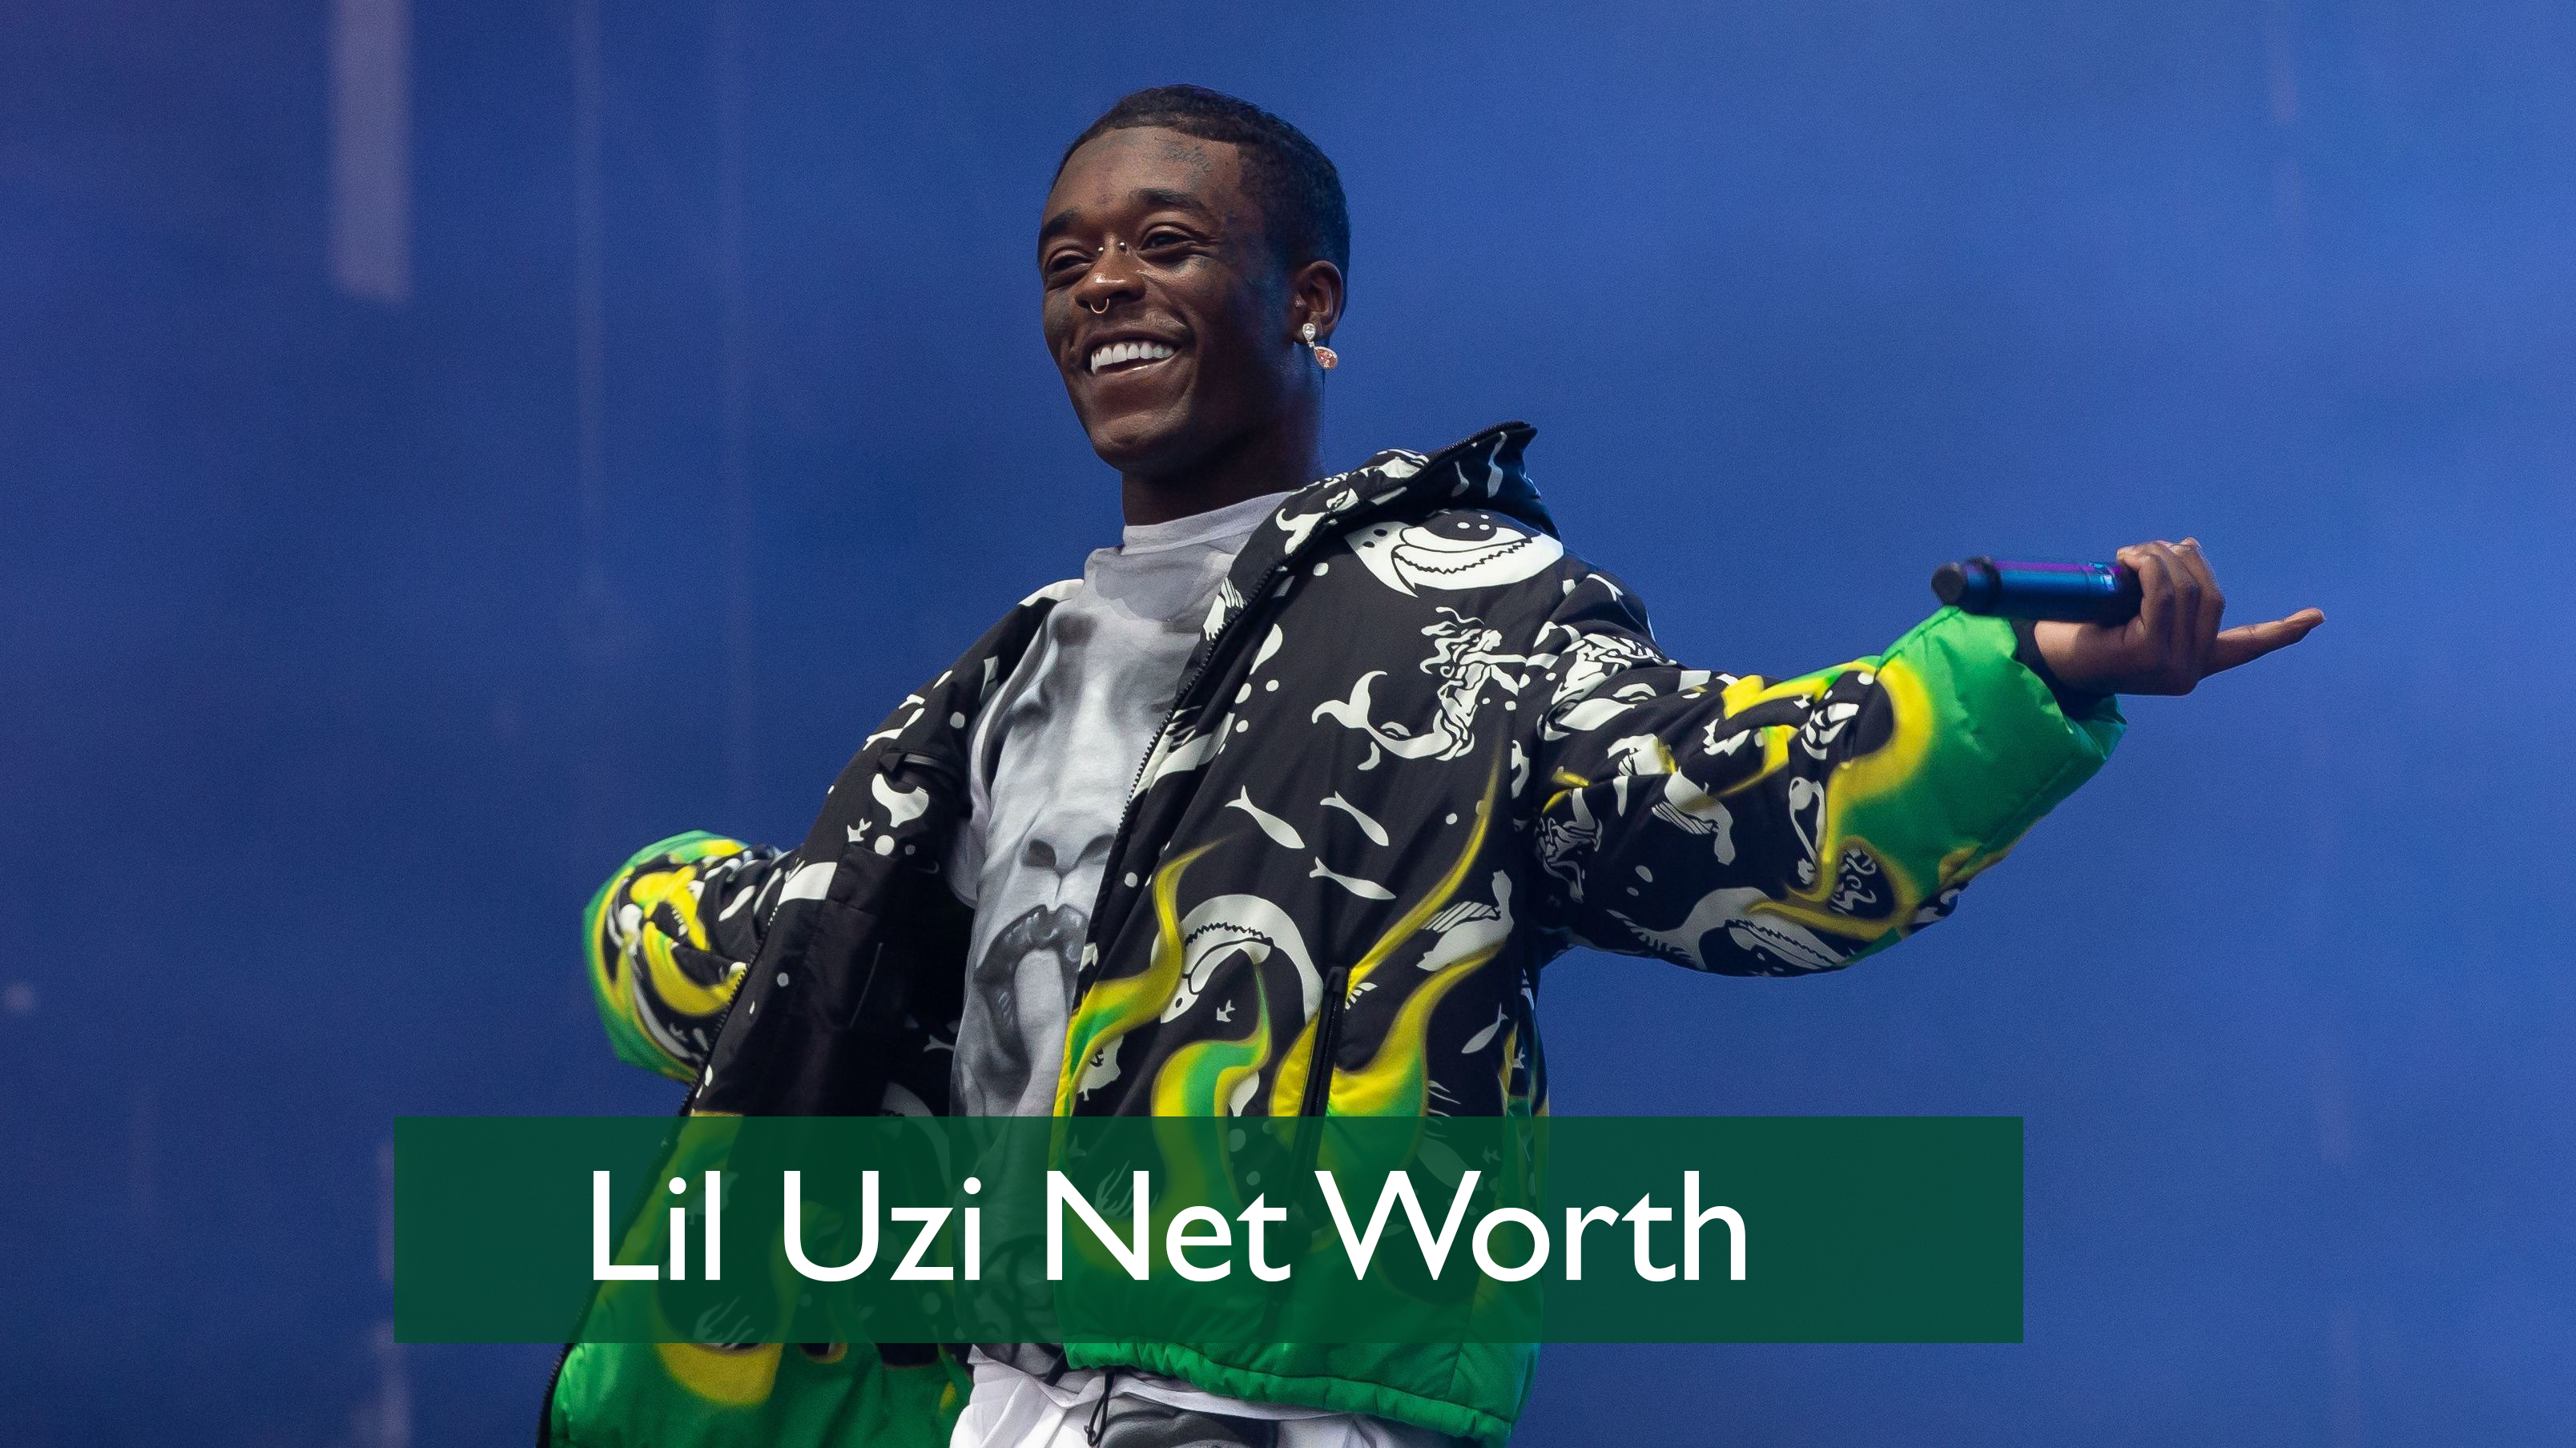 Lil Uzi Net Worth